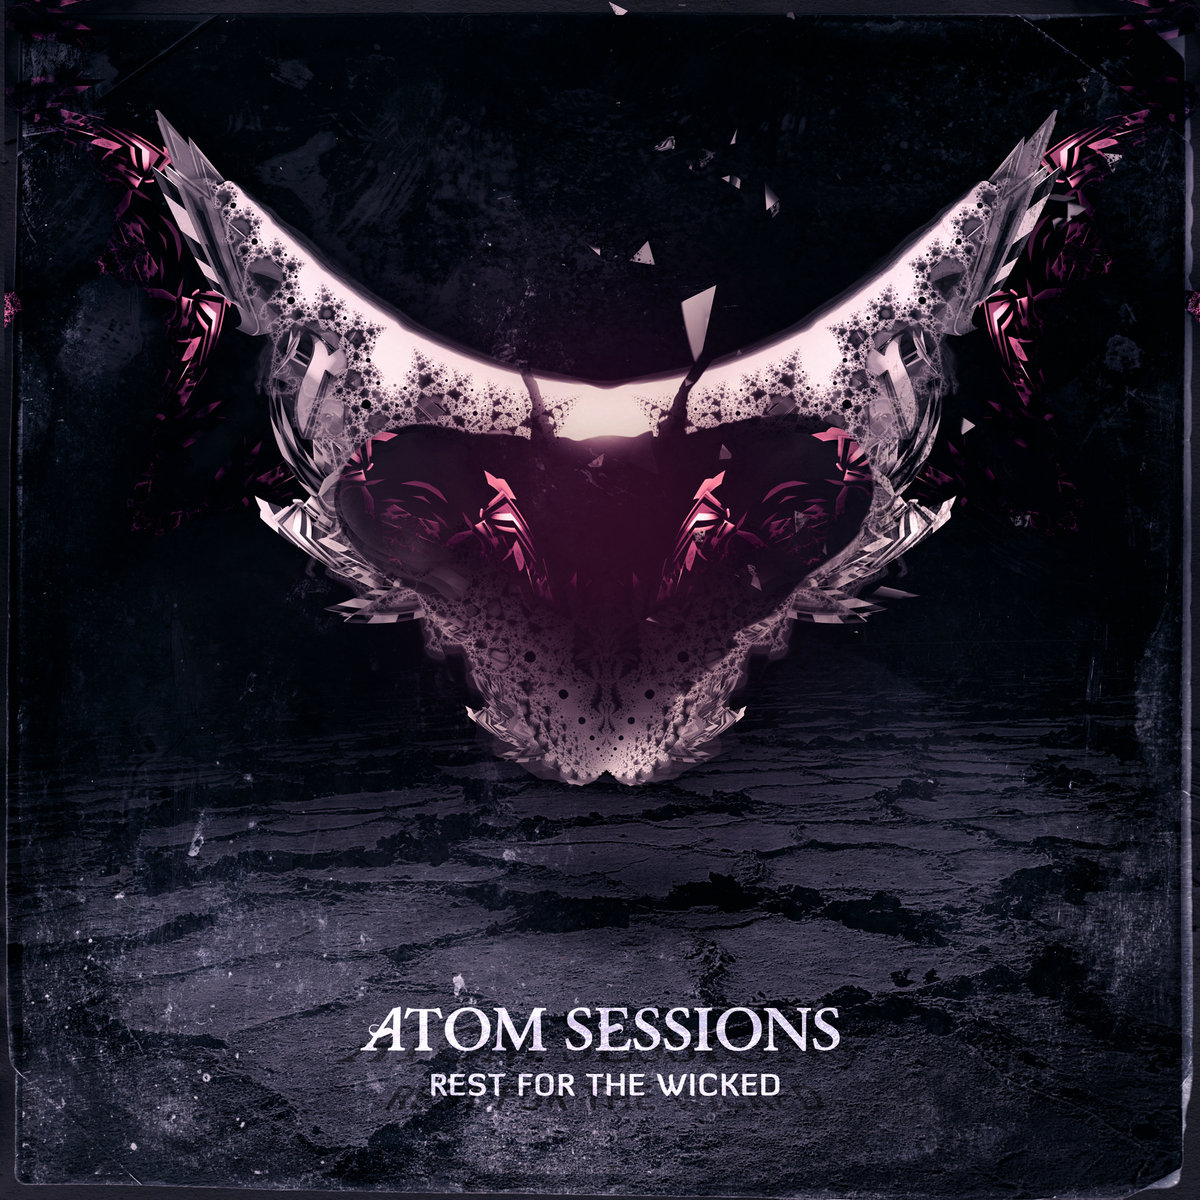 Atom Sessions - Rest For The Wicked